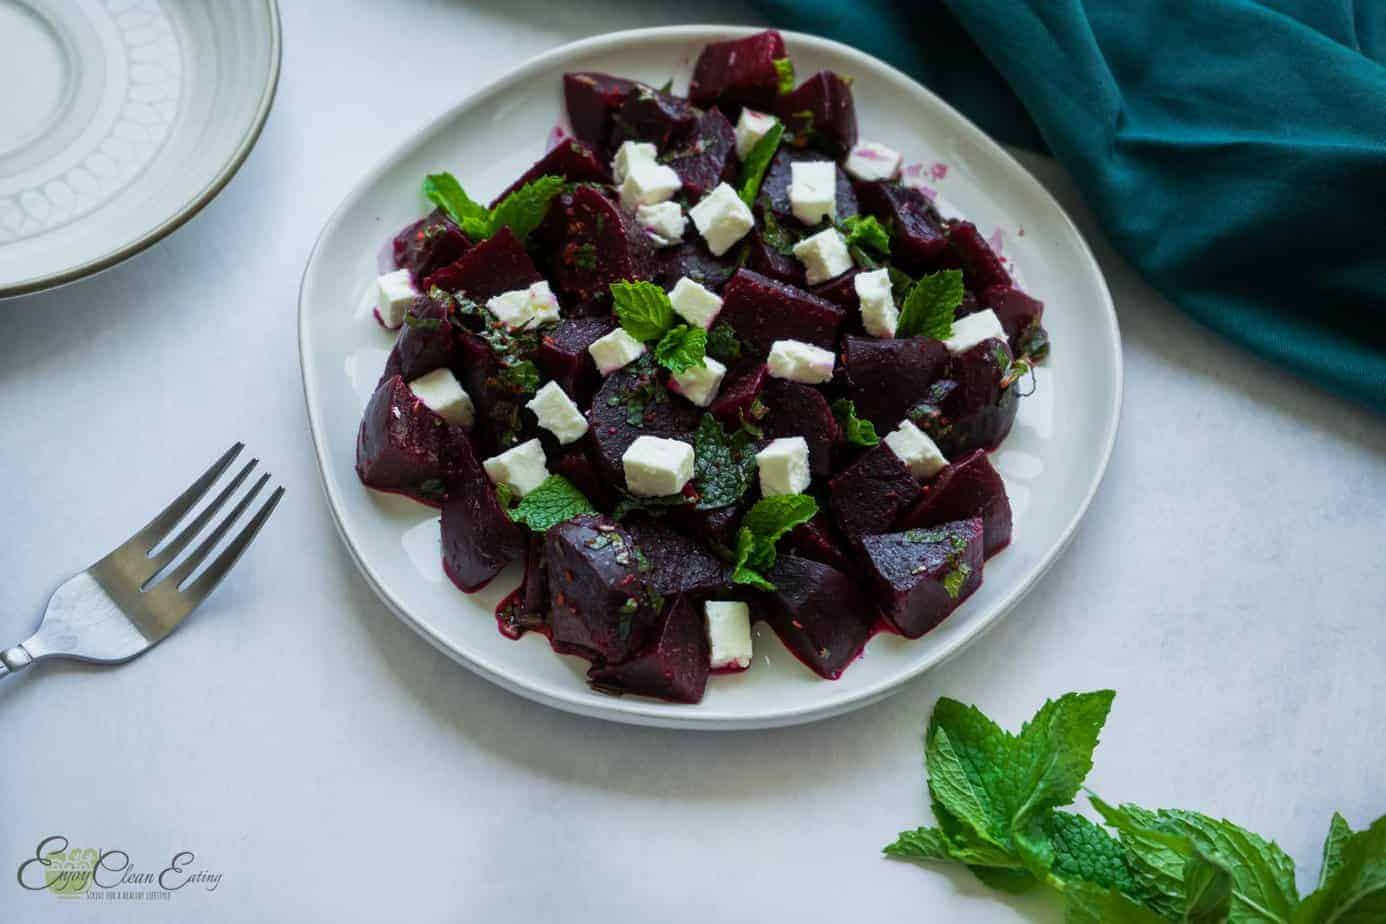 Feta and beet salad with fresh mint leave, a serving plate and a fork